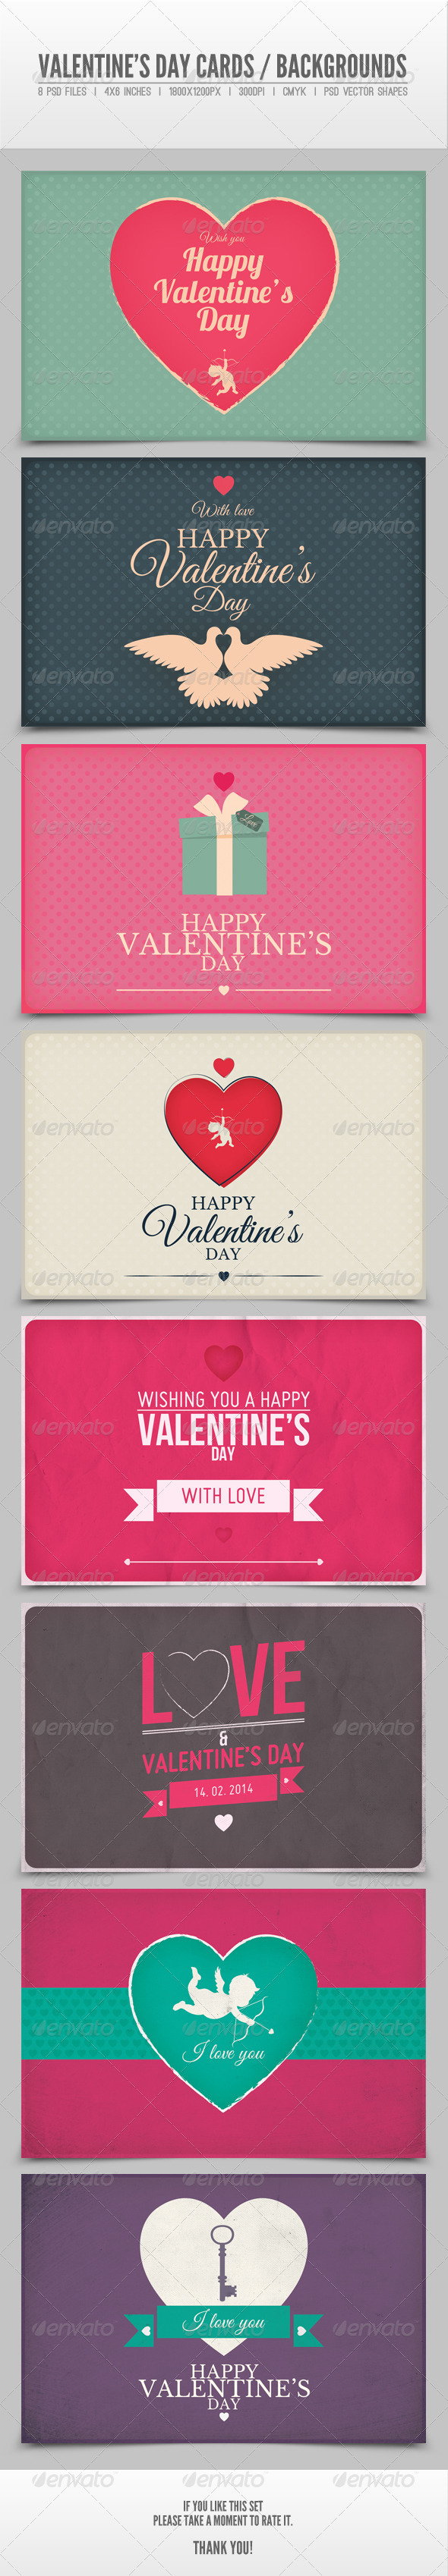 Valentine's Day Cards / Backgrounds Vol.2 - Backgrounds Graphics